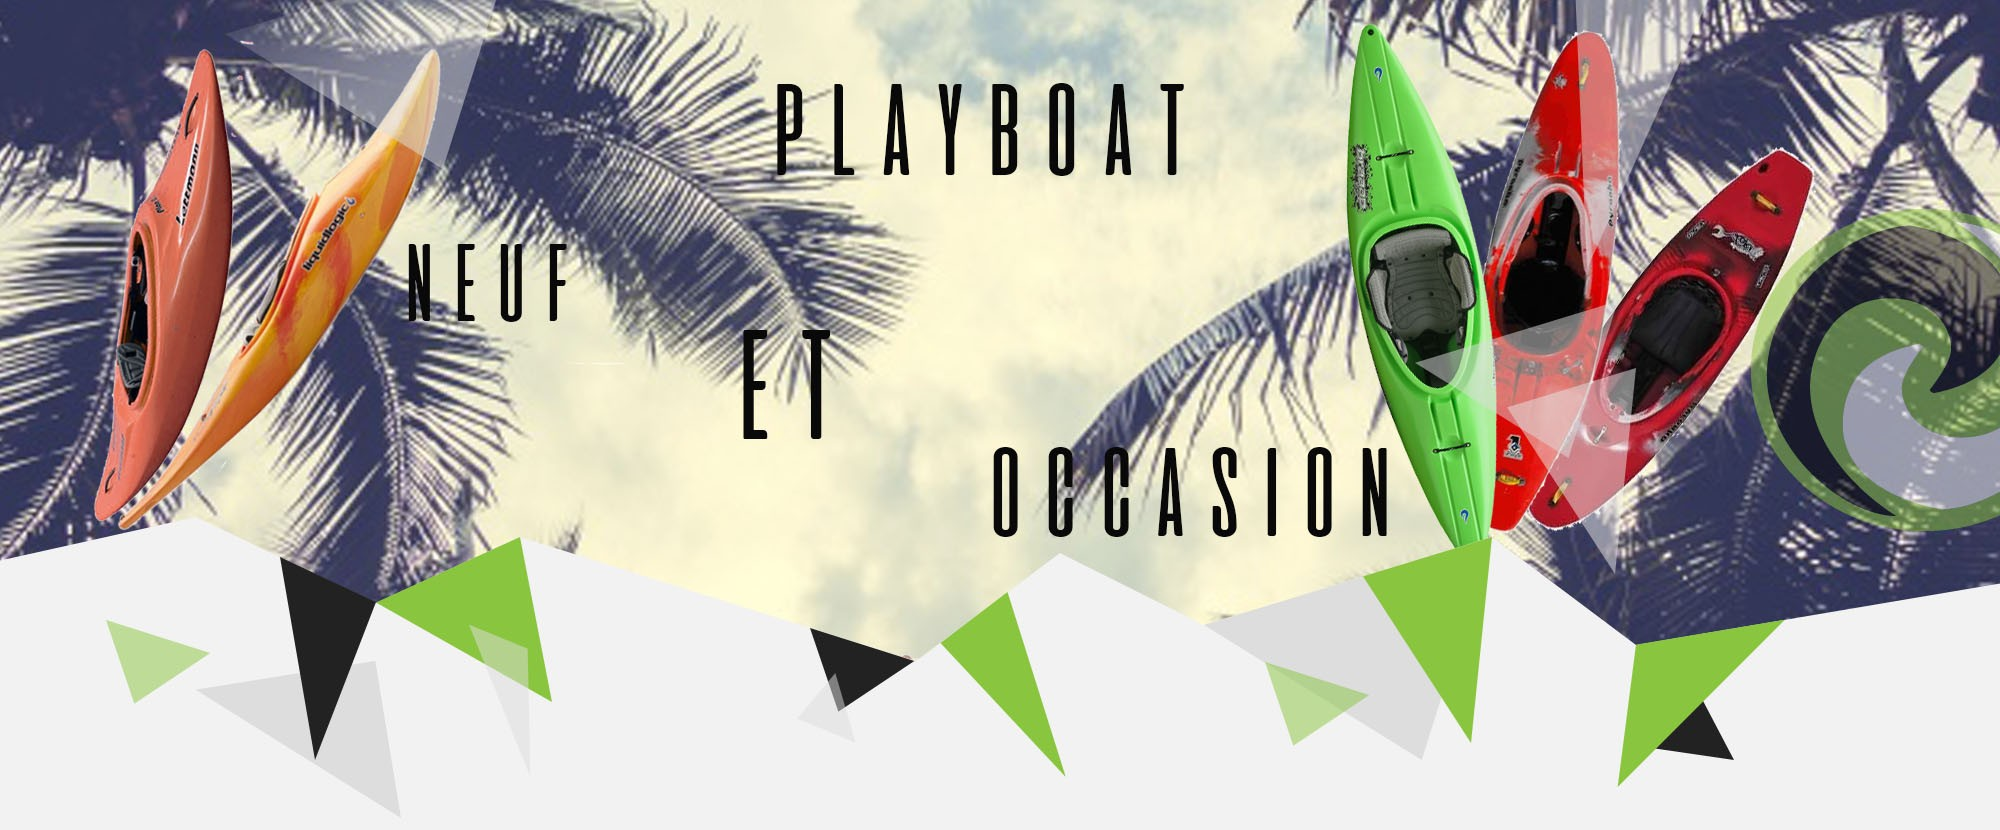 Playboat neuf et occasion